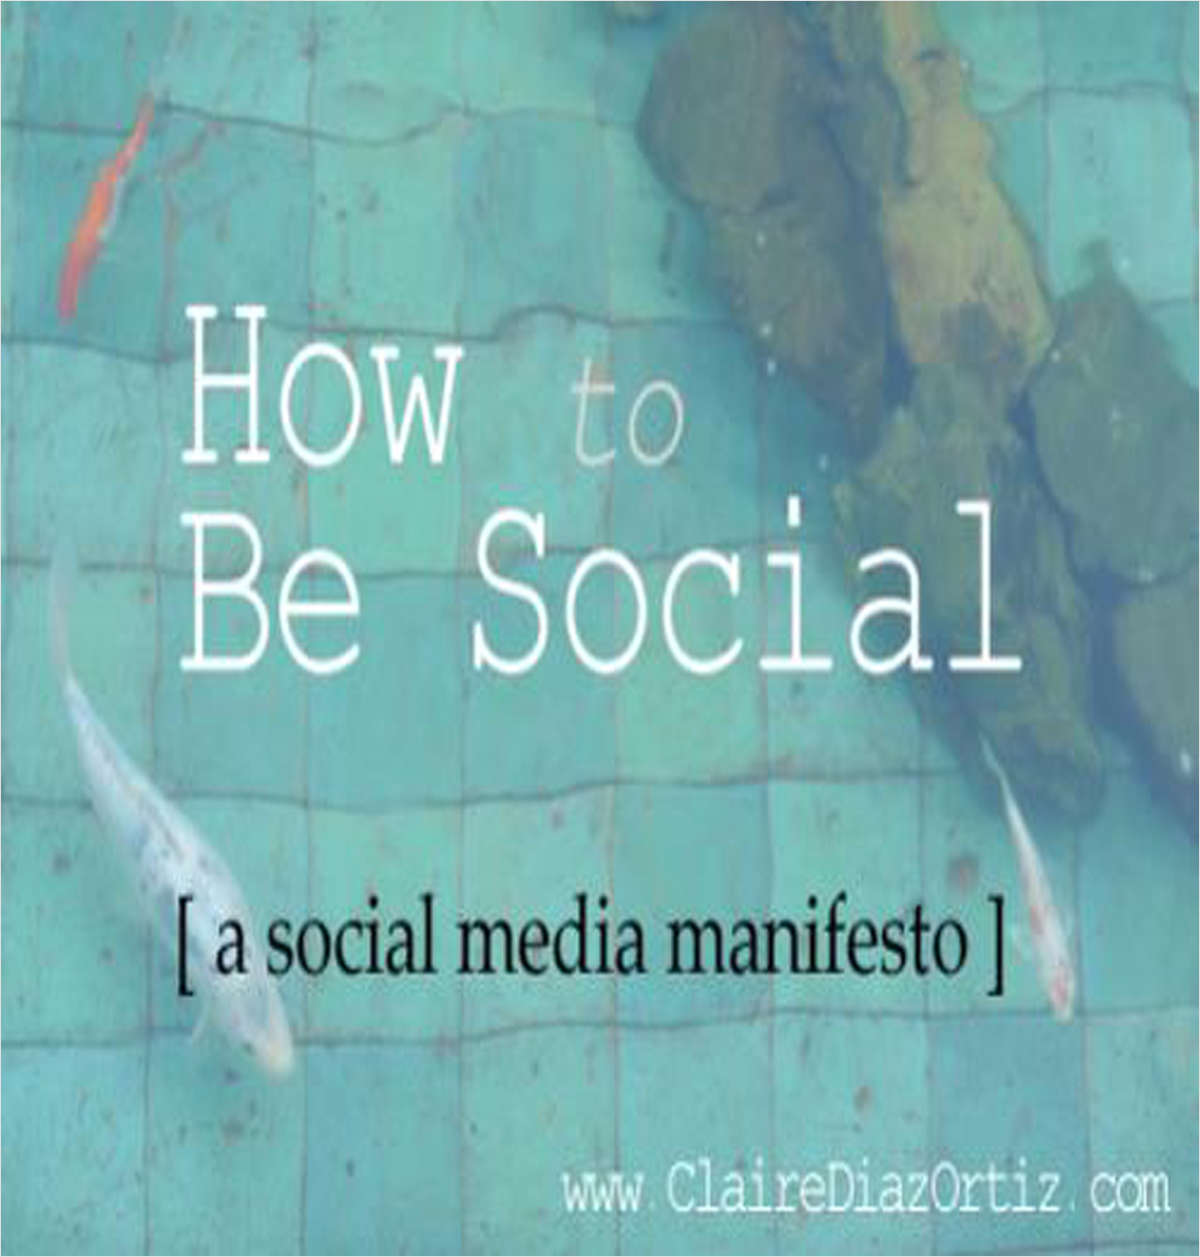 How to Be Social: A Social Media Manifesto